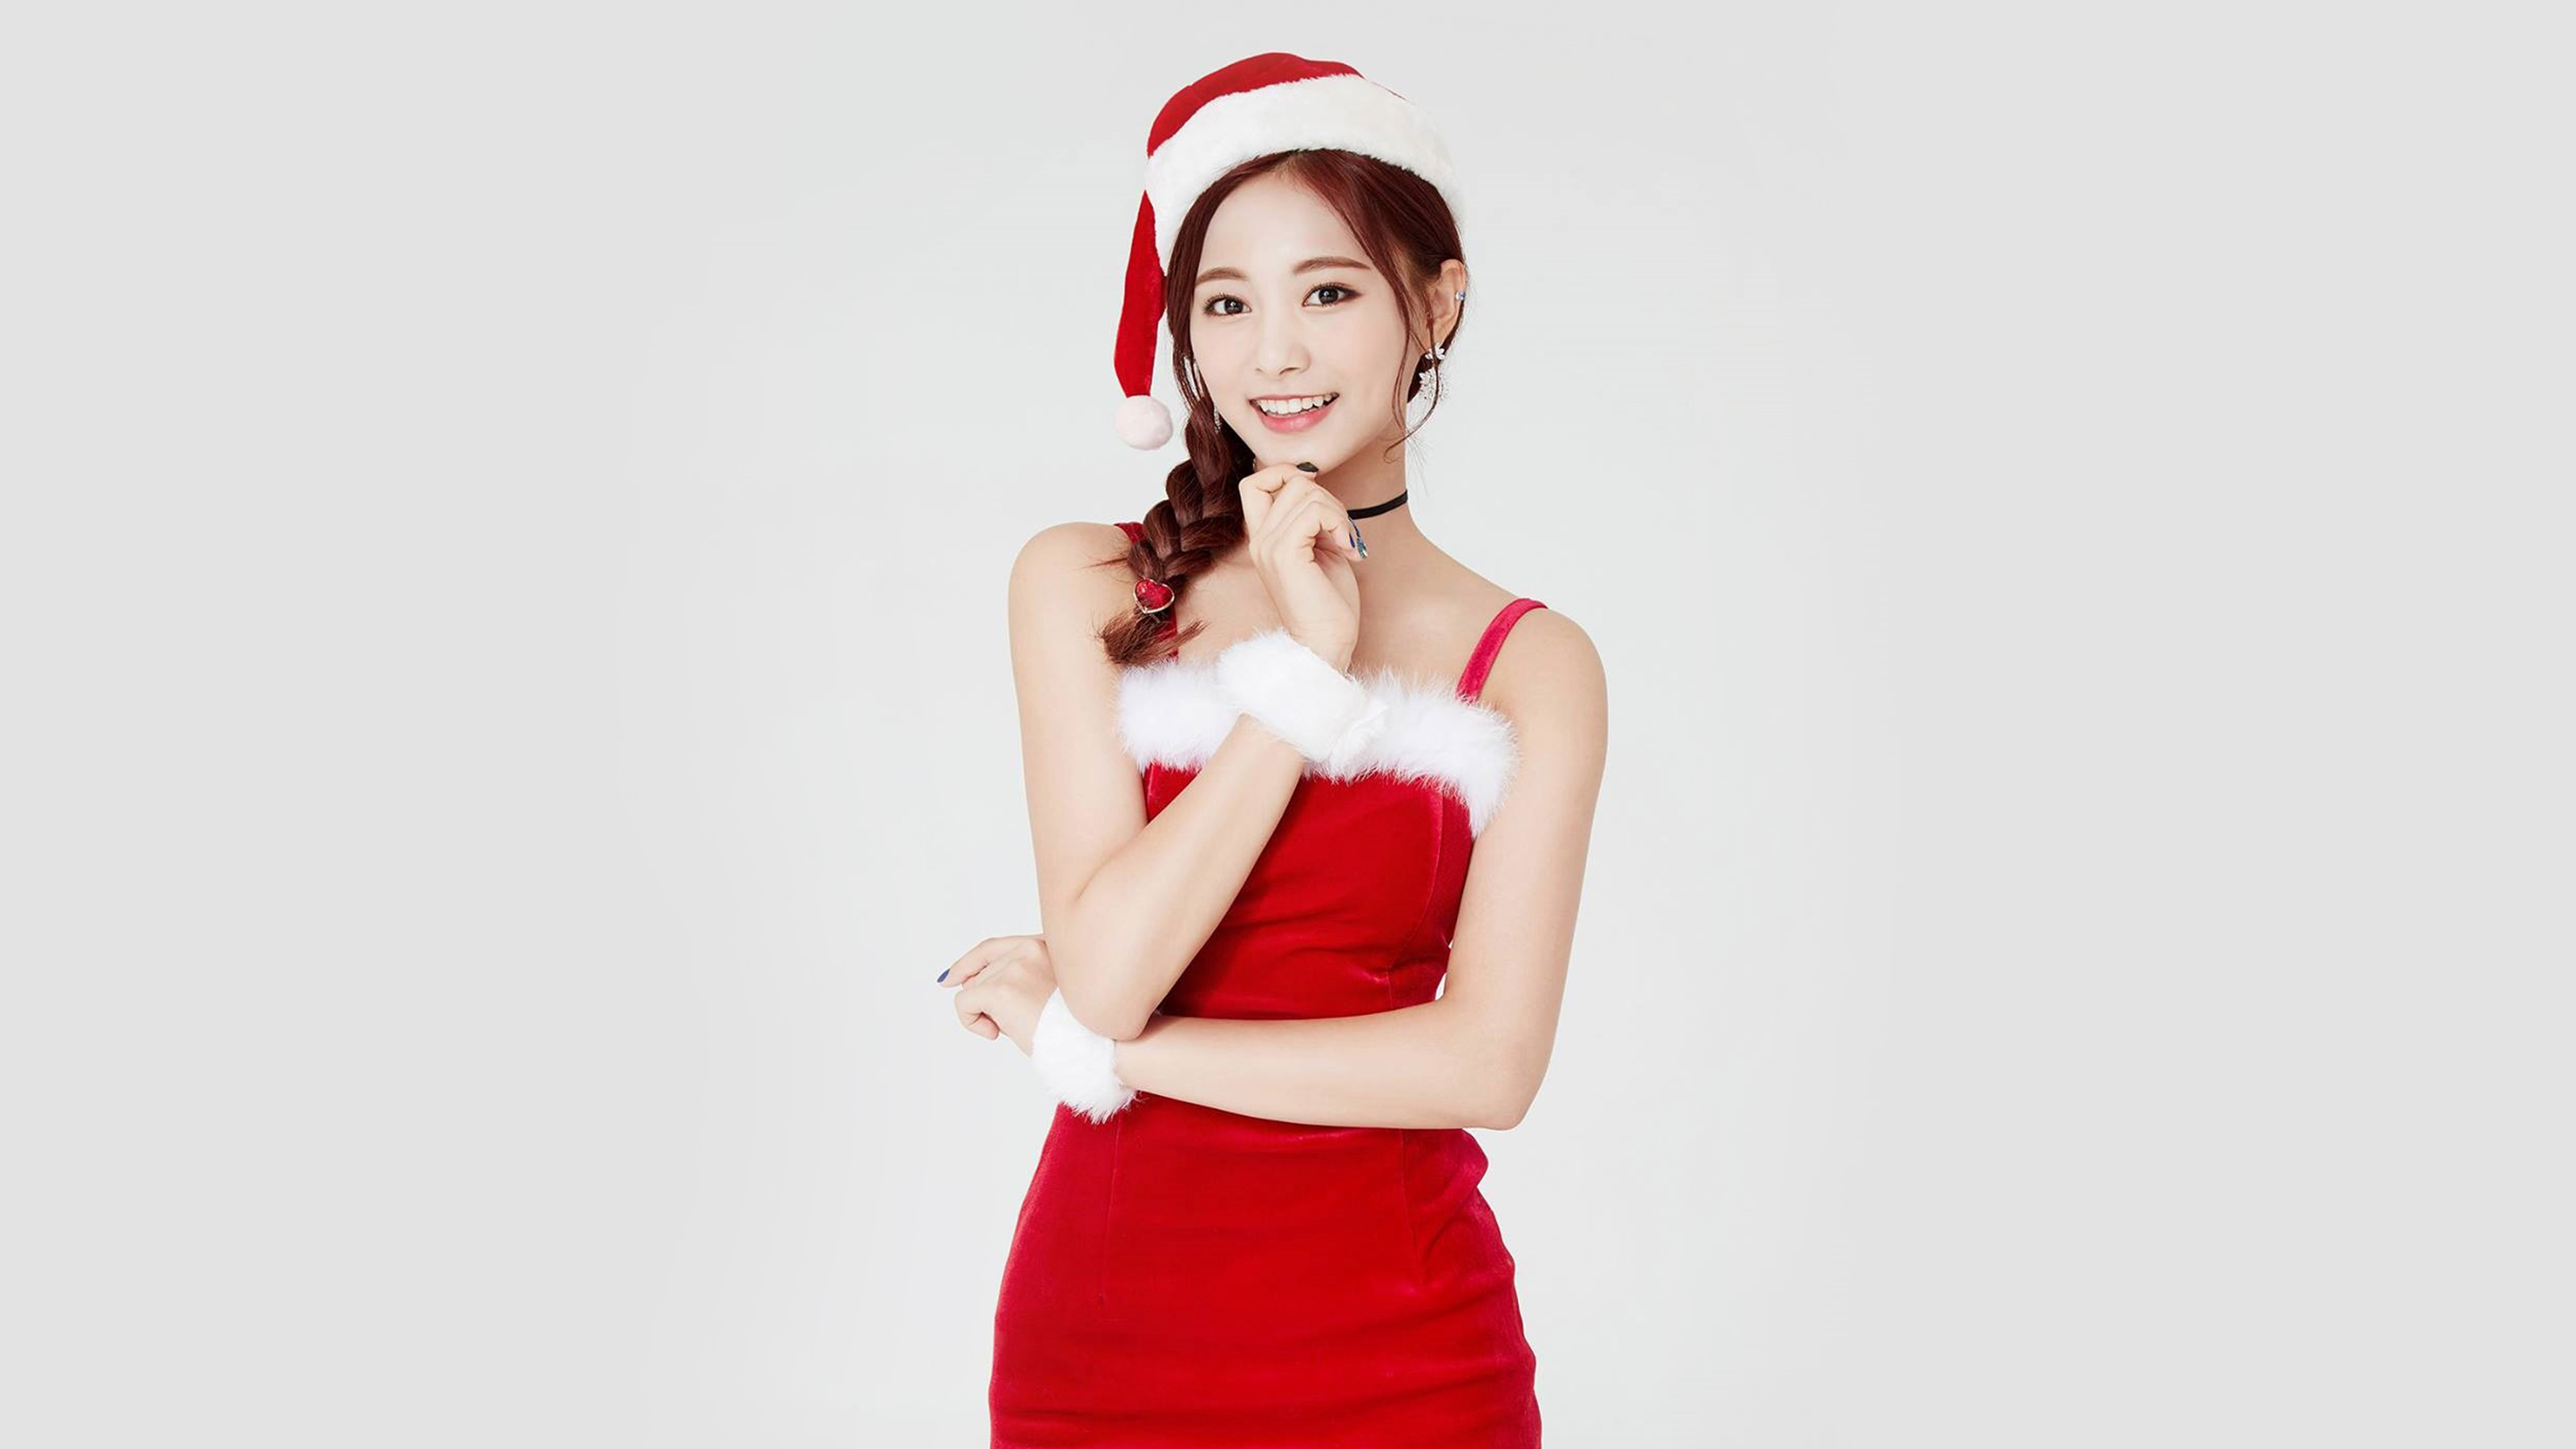 Cute Wallpaper For Summer Hp14 Twice Tzuyu Girl Christmas Kpop Wallpaper